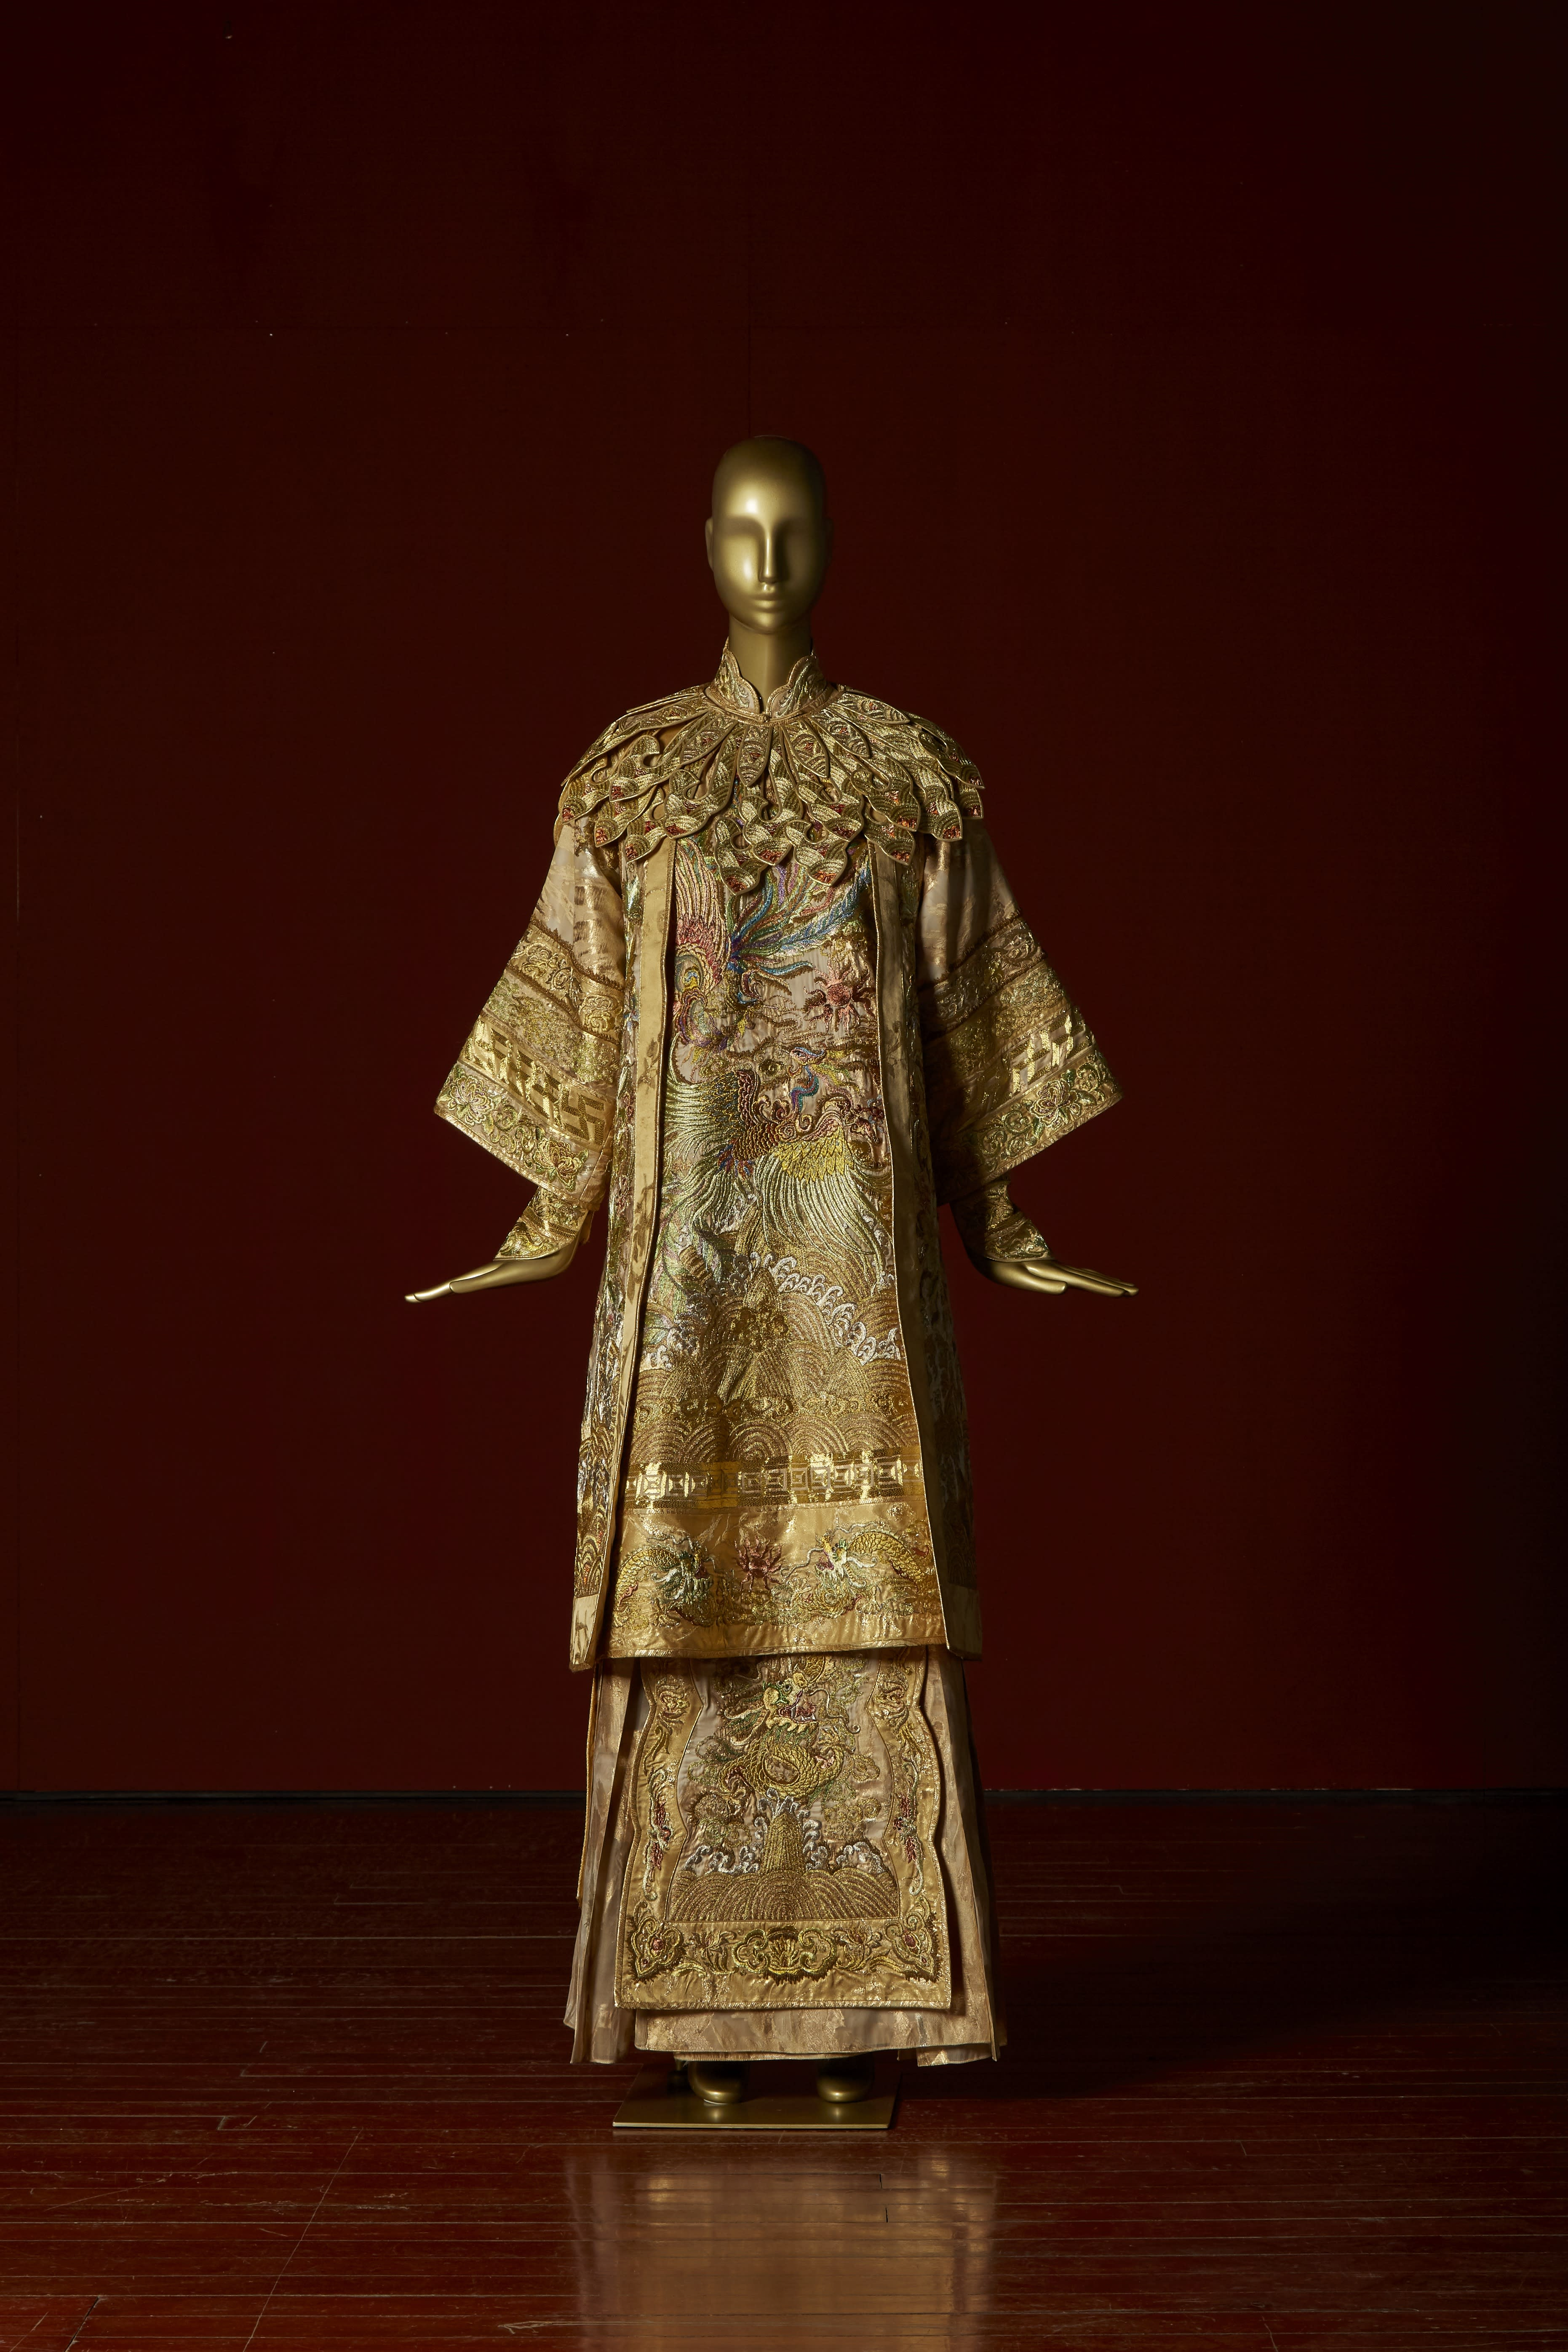 The best looks from designer Guo Pei's collection at the Asian Civilisations Museum, Singapore